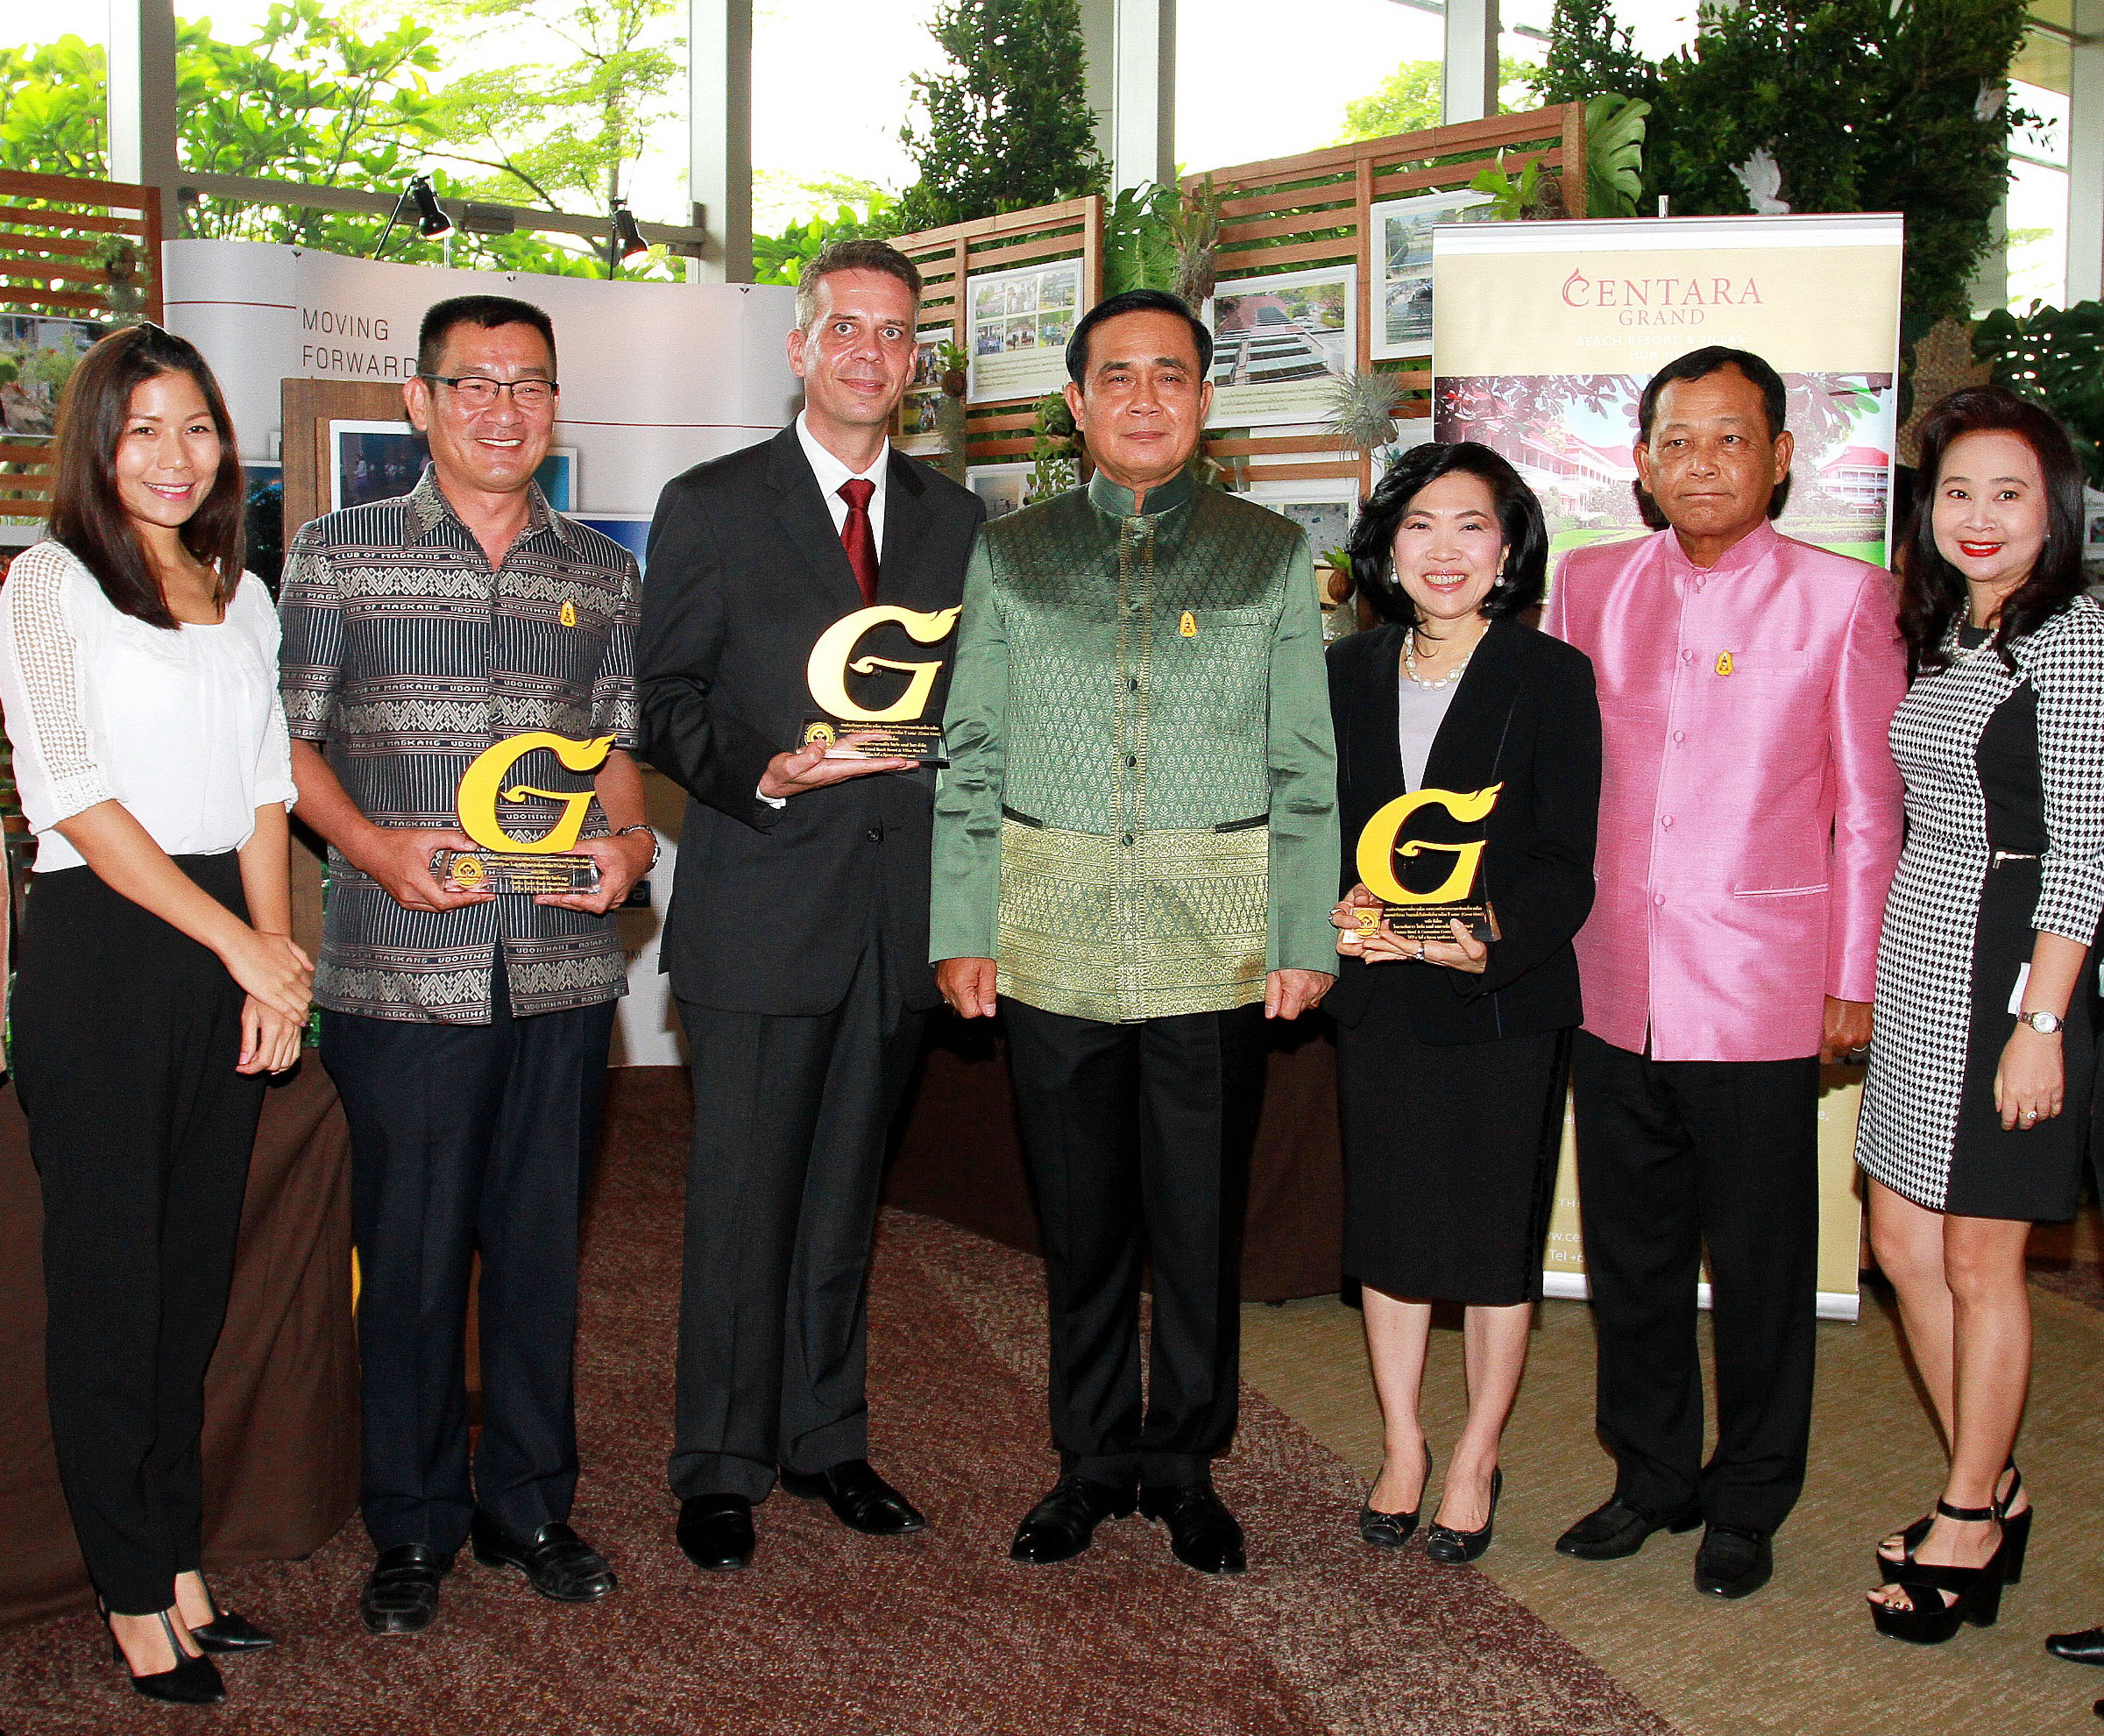 CENTARA RECOGNIZED FOR GREEN INITIATIVES | Samui Times